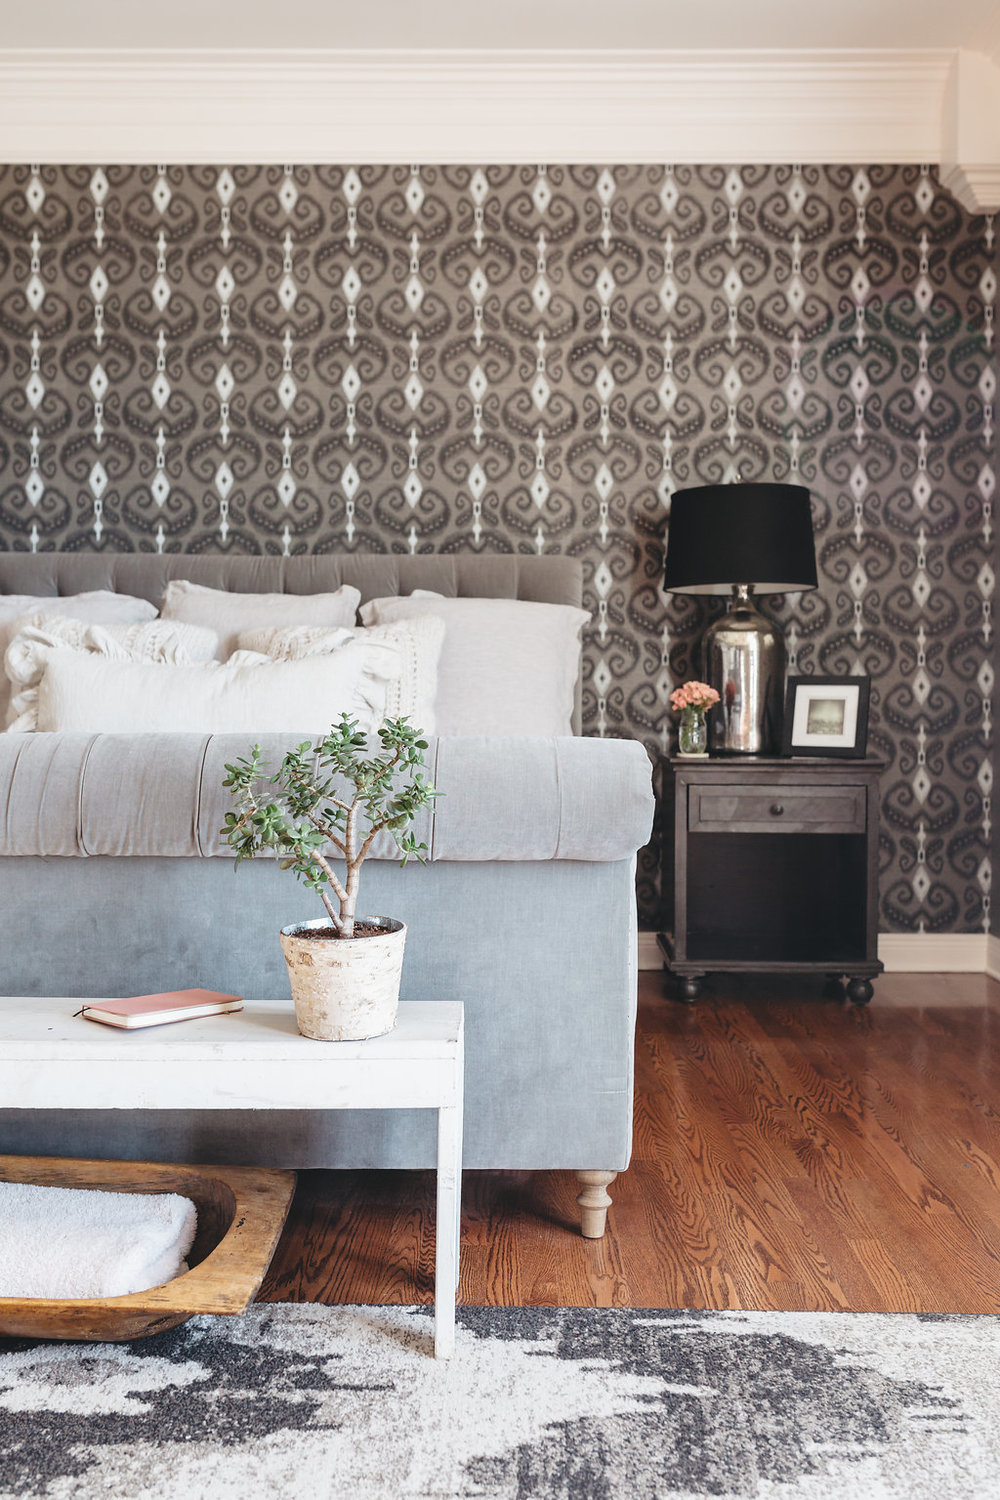 Wallpaper as art - in the home of Little Big Town's Phillip Sweet & blogger wife Rebecca (sweetladijane).   City Farmhouse Style Photography: Alissa Saylor